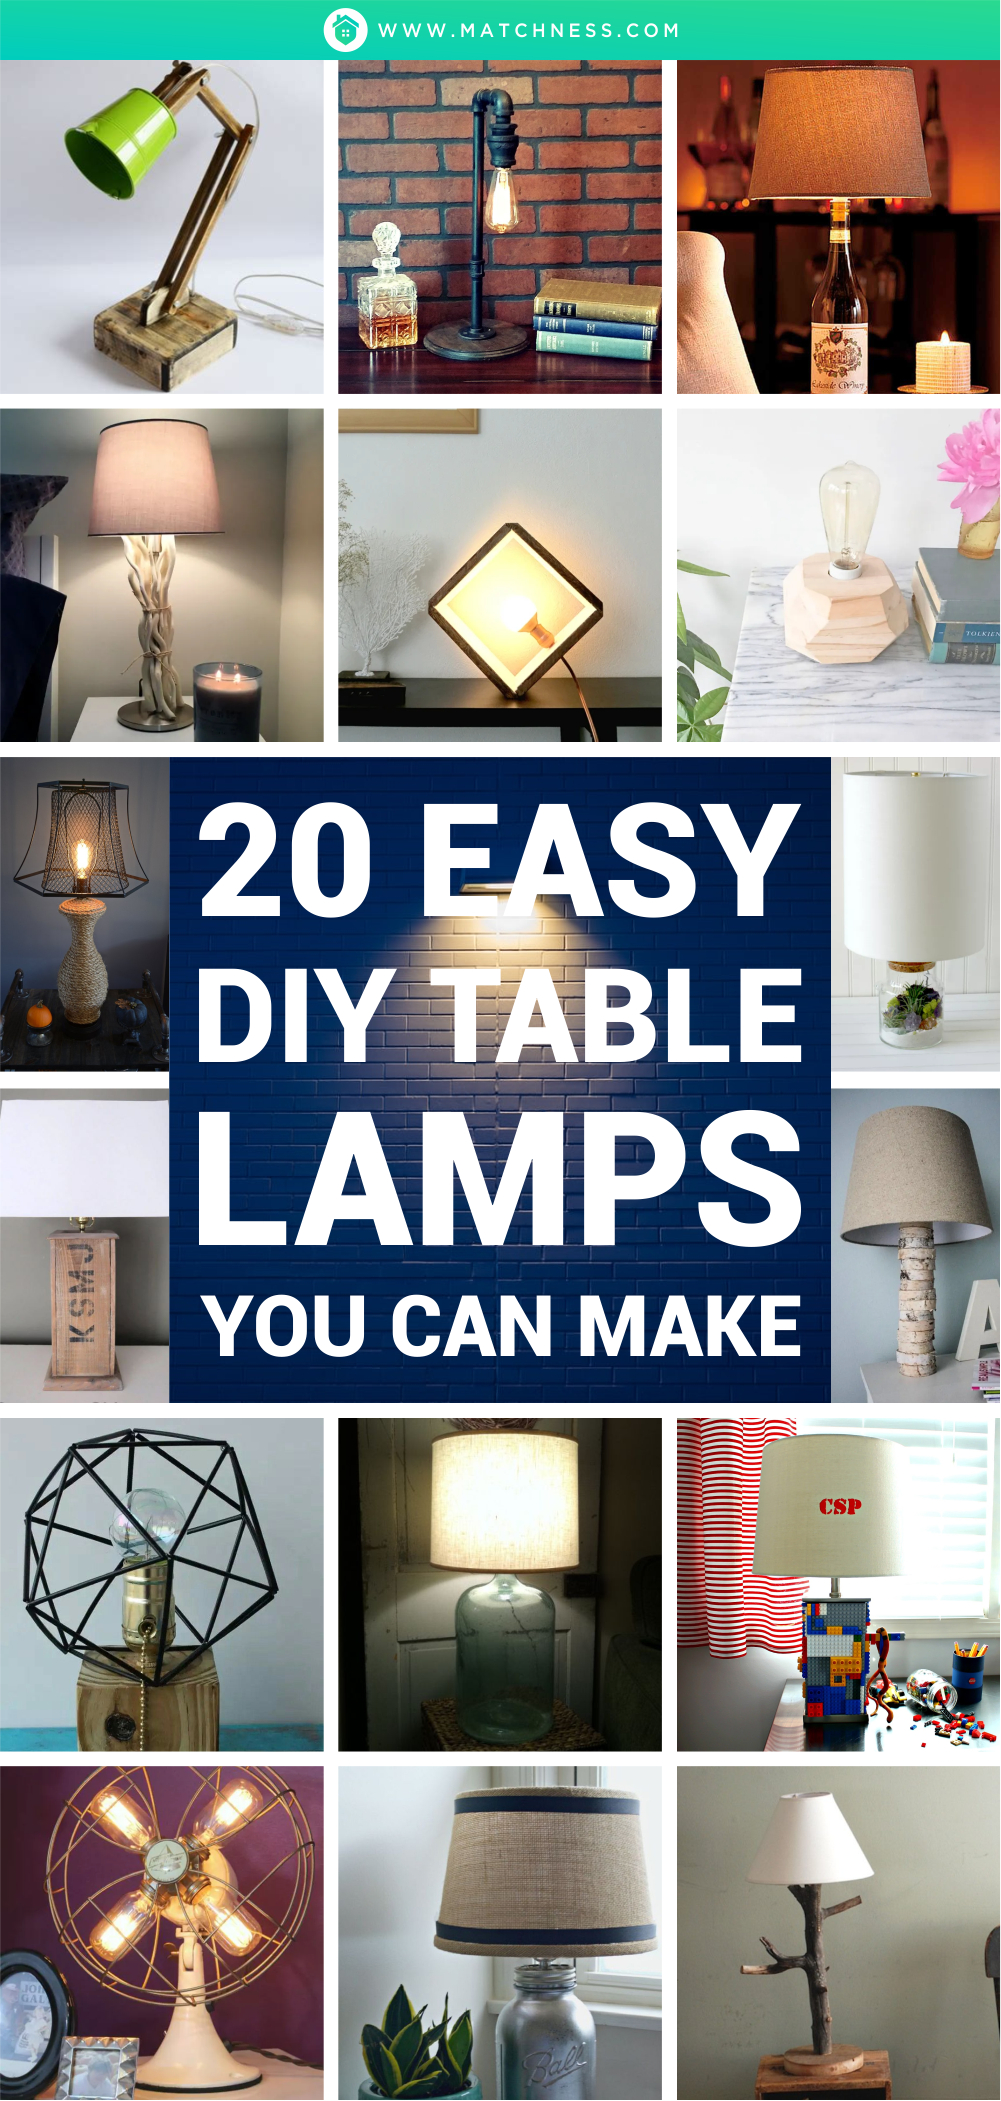 20 easy diy table lamps you can make1